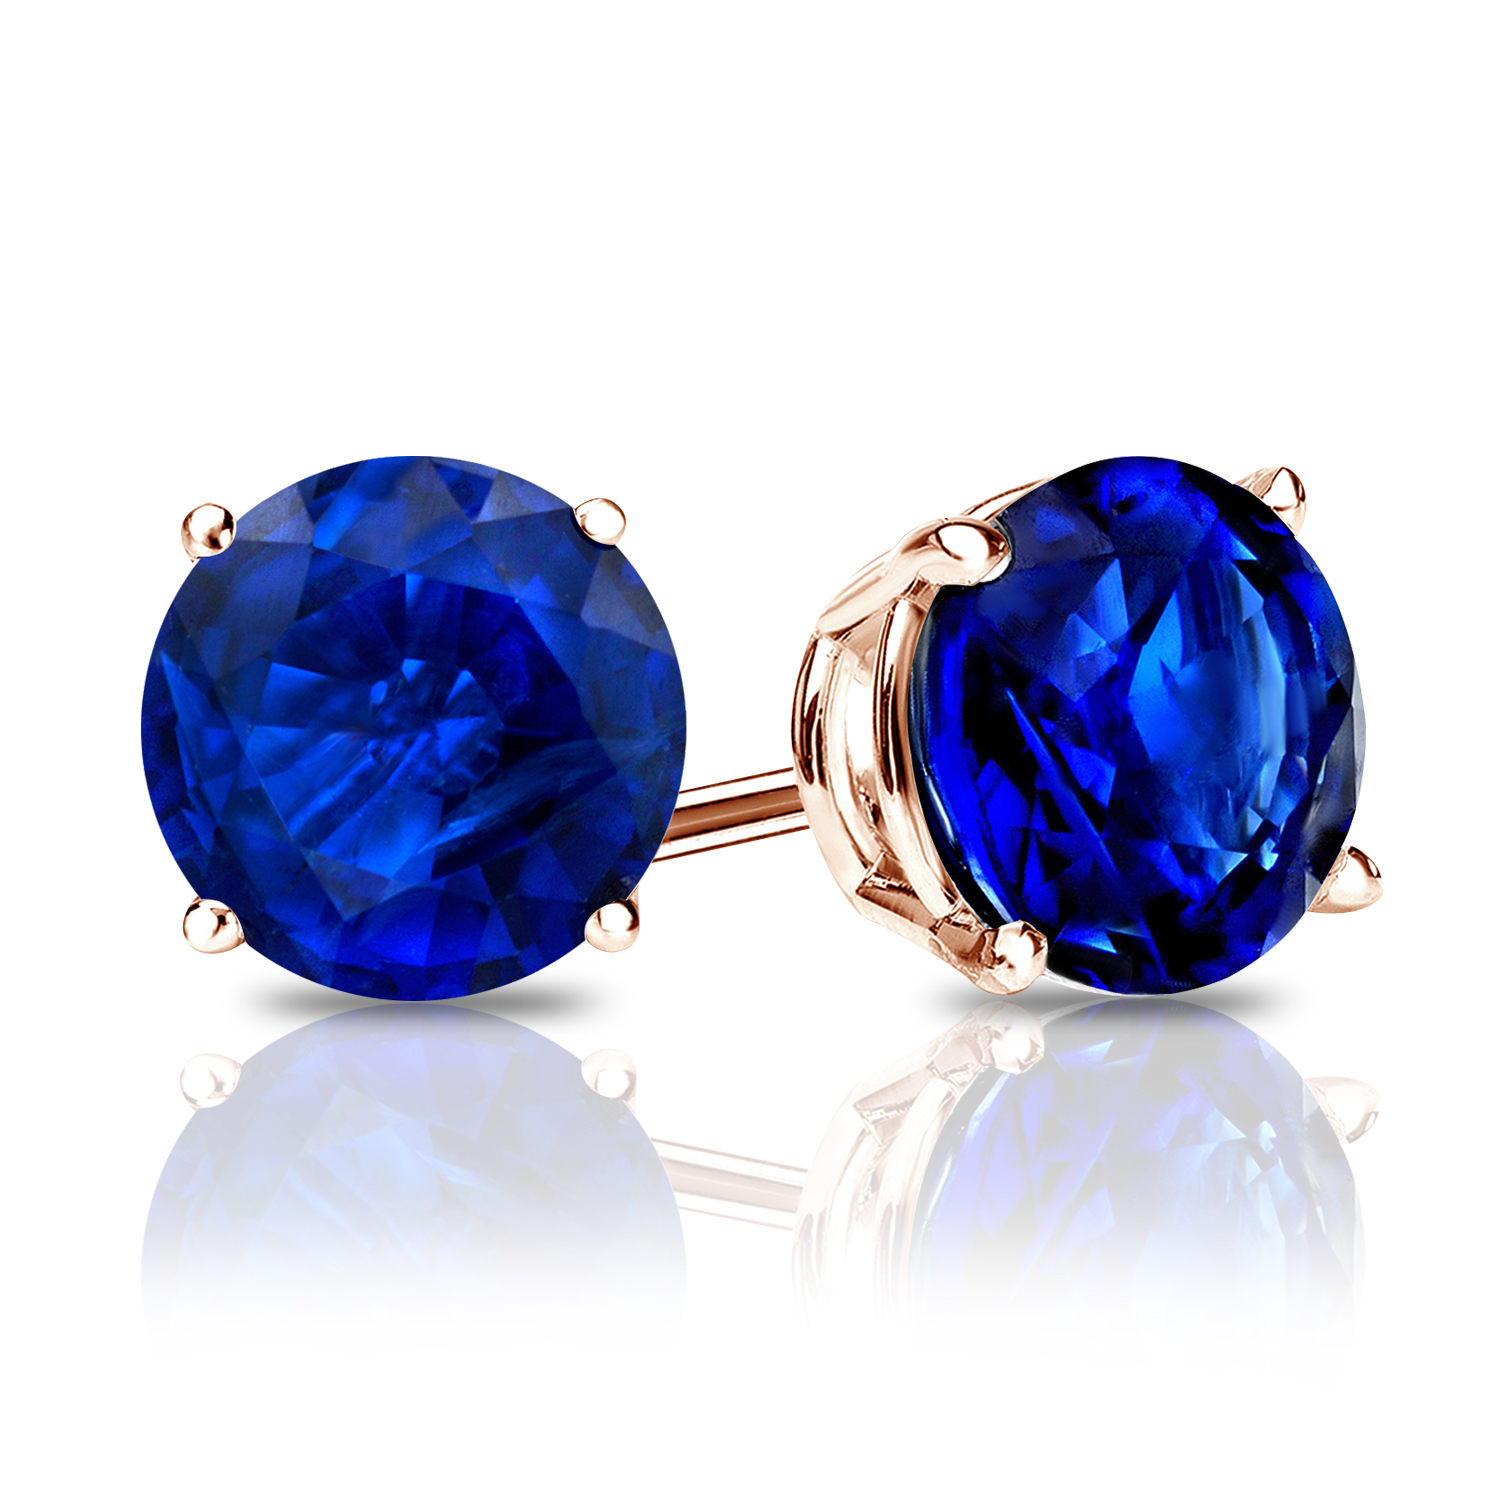 Certified 0.33 cttw Round Blue Sapphire Gemstone Stud Earrings in 14k Rose Gold 4-Prong Basket (Blue, AAA)